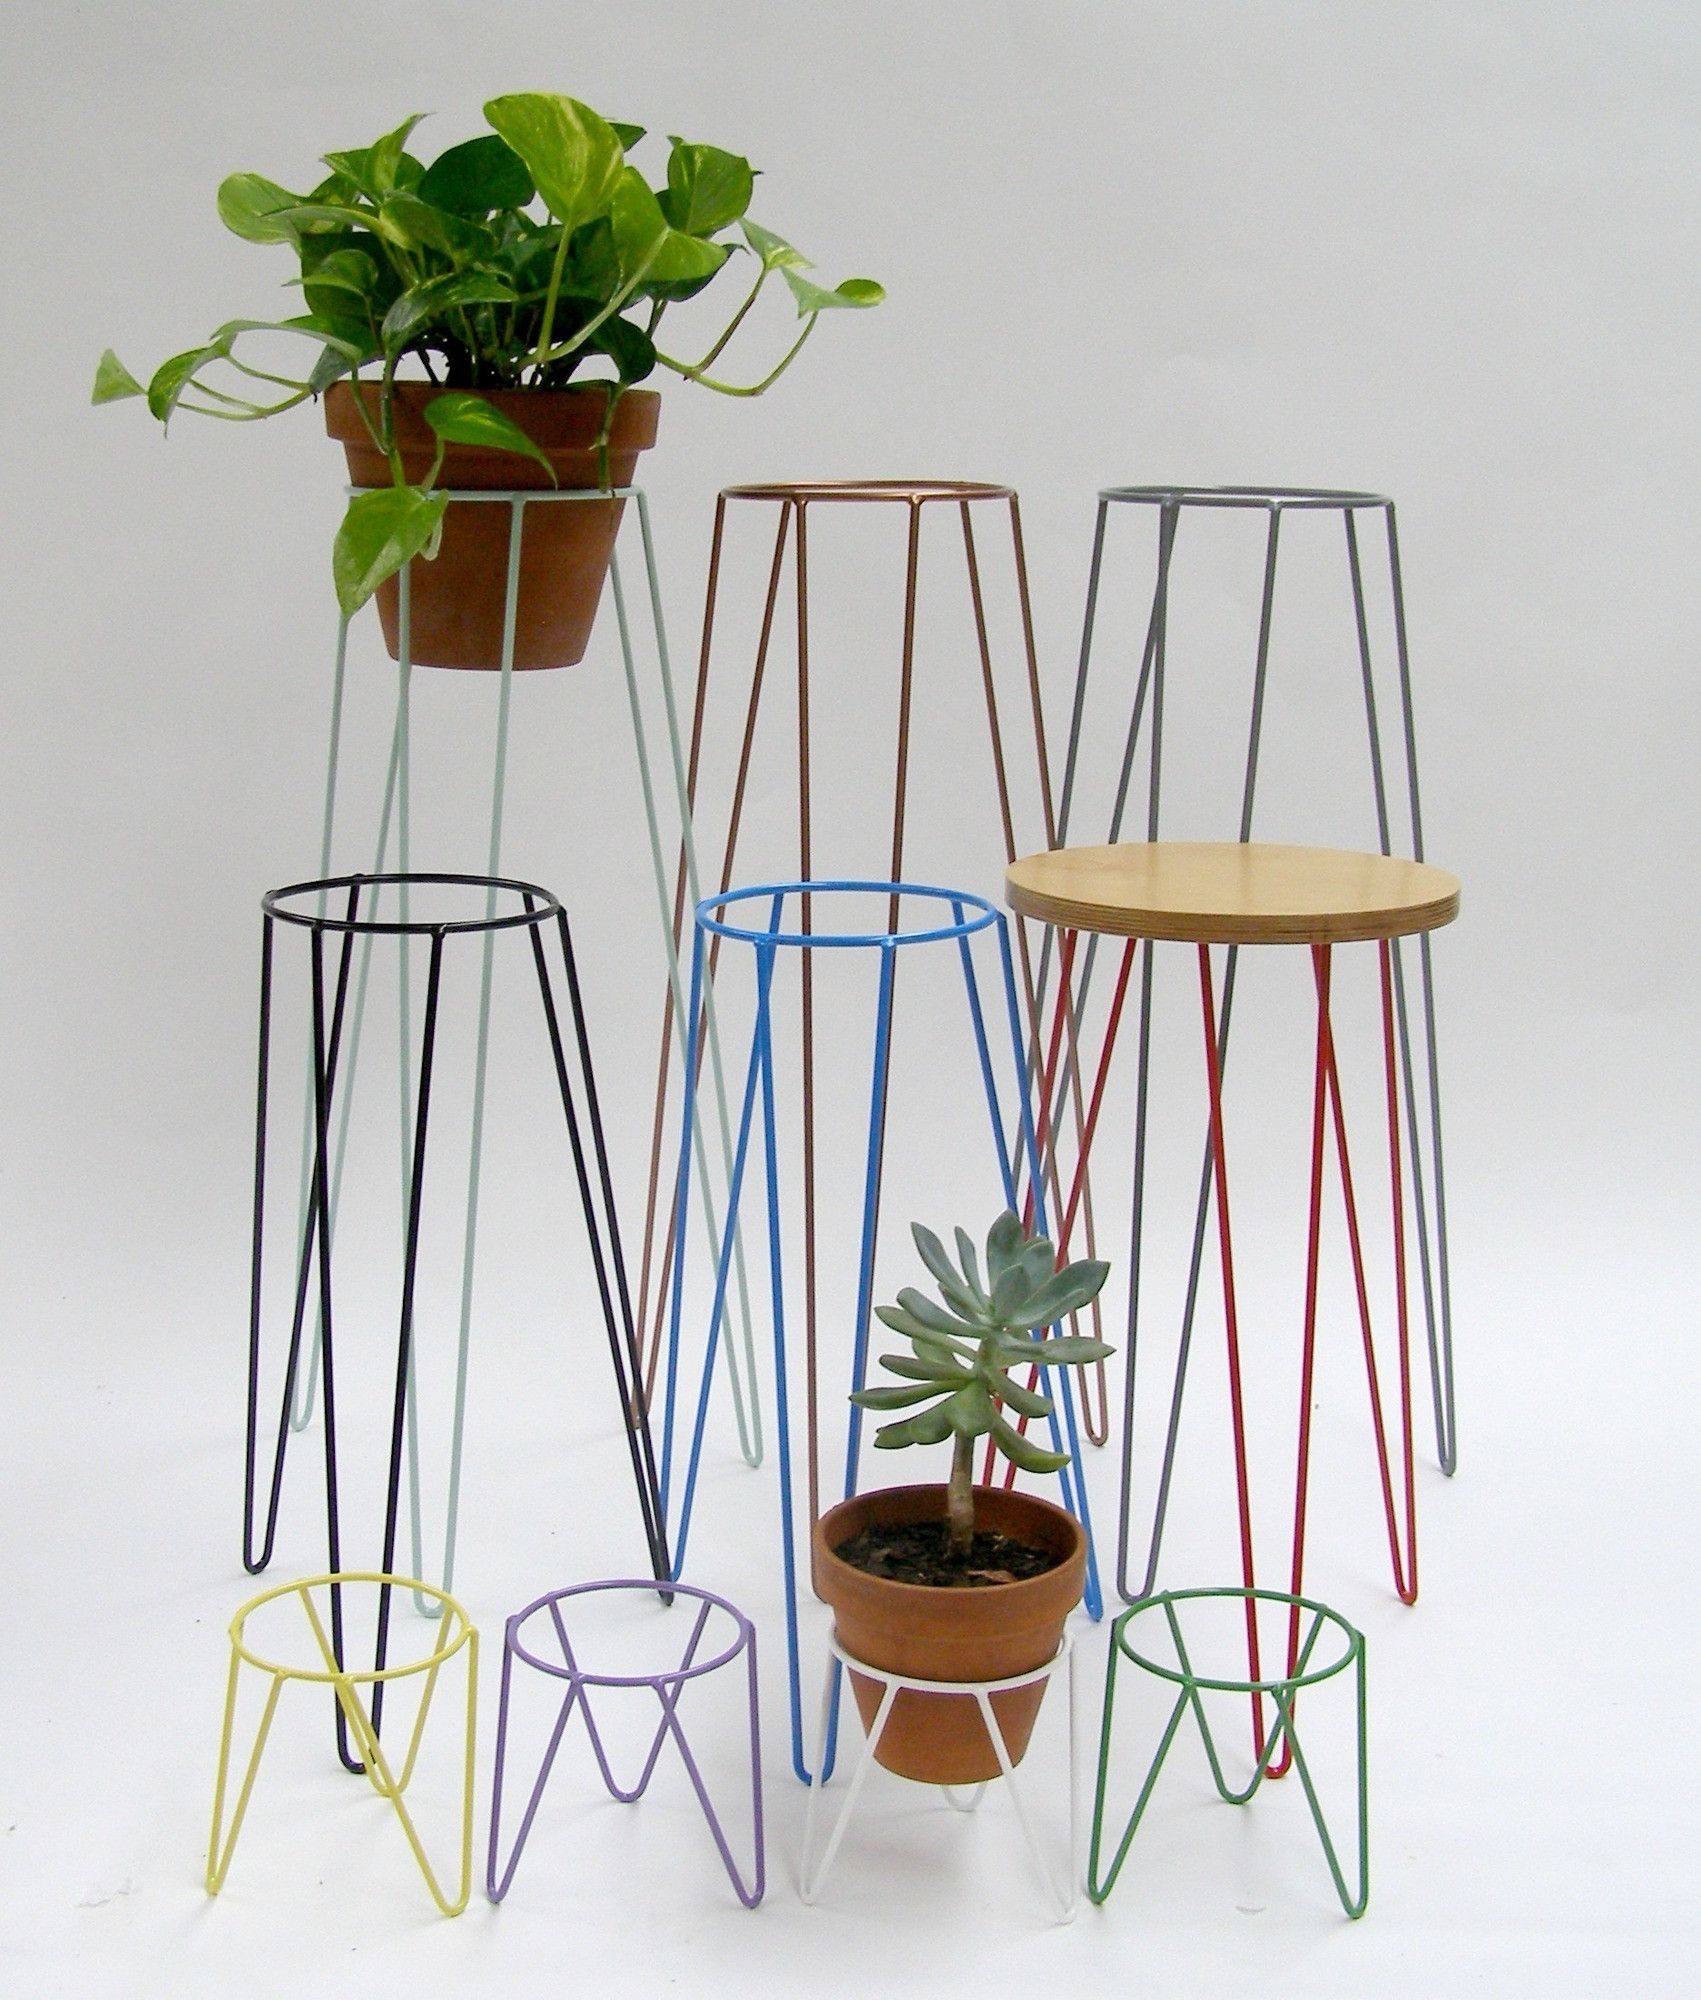 White Pedestal Plant Stands Plant Stand In 2019 Things I Like Växter Växter